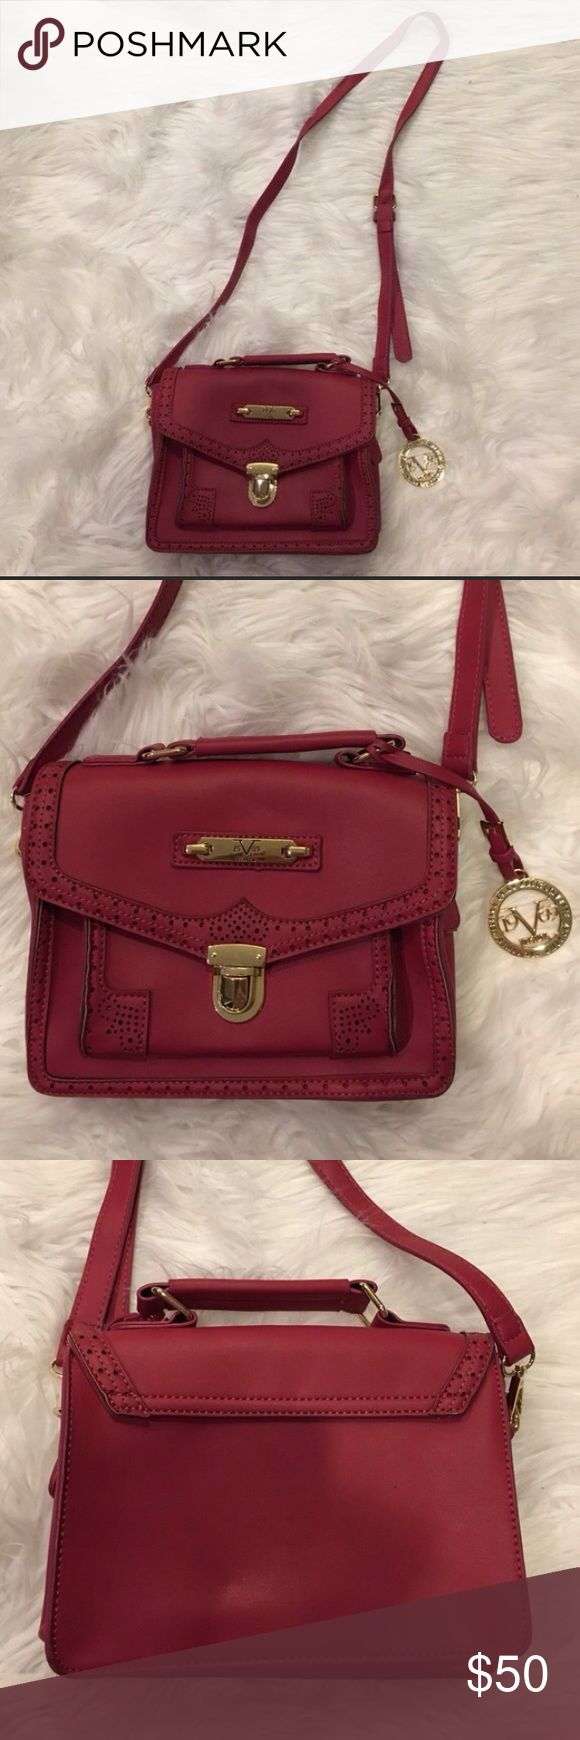 Versace 19.69 Abbigliamento Sportivo Bag From Milan, Italy. Faux leather. In excellent condition. Crossbody with adjustable shoulder strap. This brand is not the same as Versace official. Like new and the last of it's kind... make an offer! Bags Crossbody Bags